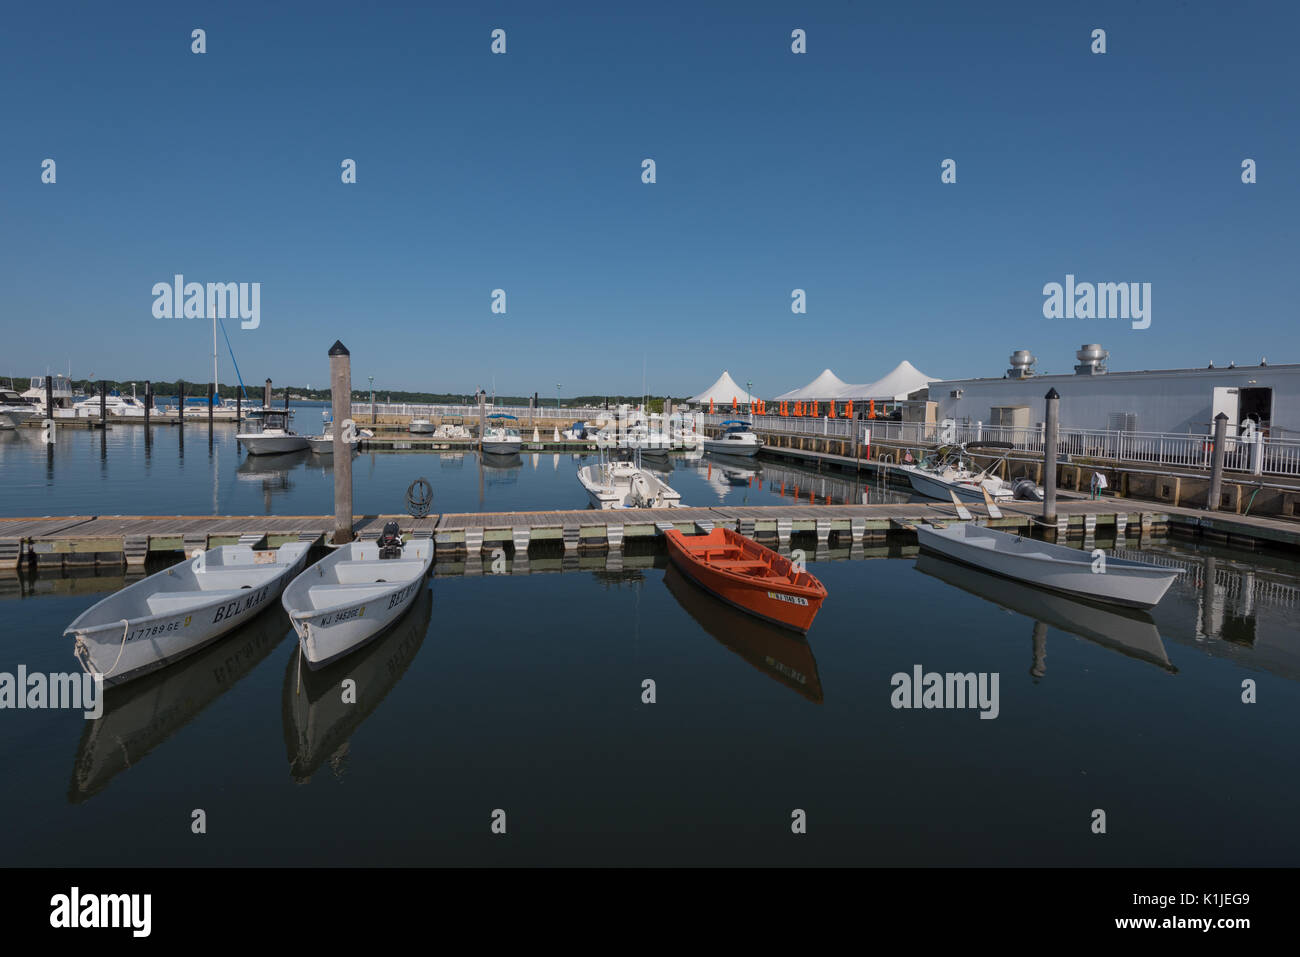 Belmar, NJ USA -- August 26, 2017 Orange and White motorboats are docked at the Belmar Marina and reflected in the water. Editorial Use Only. - Stock Image